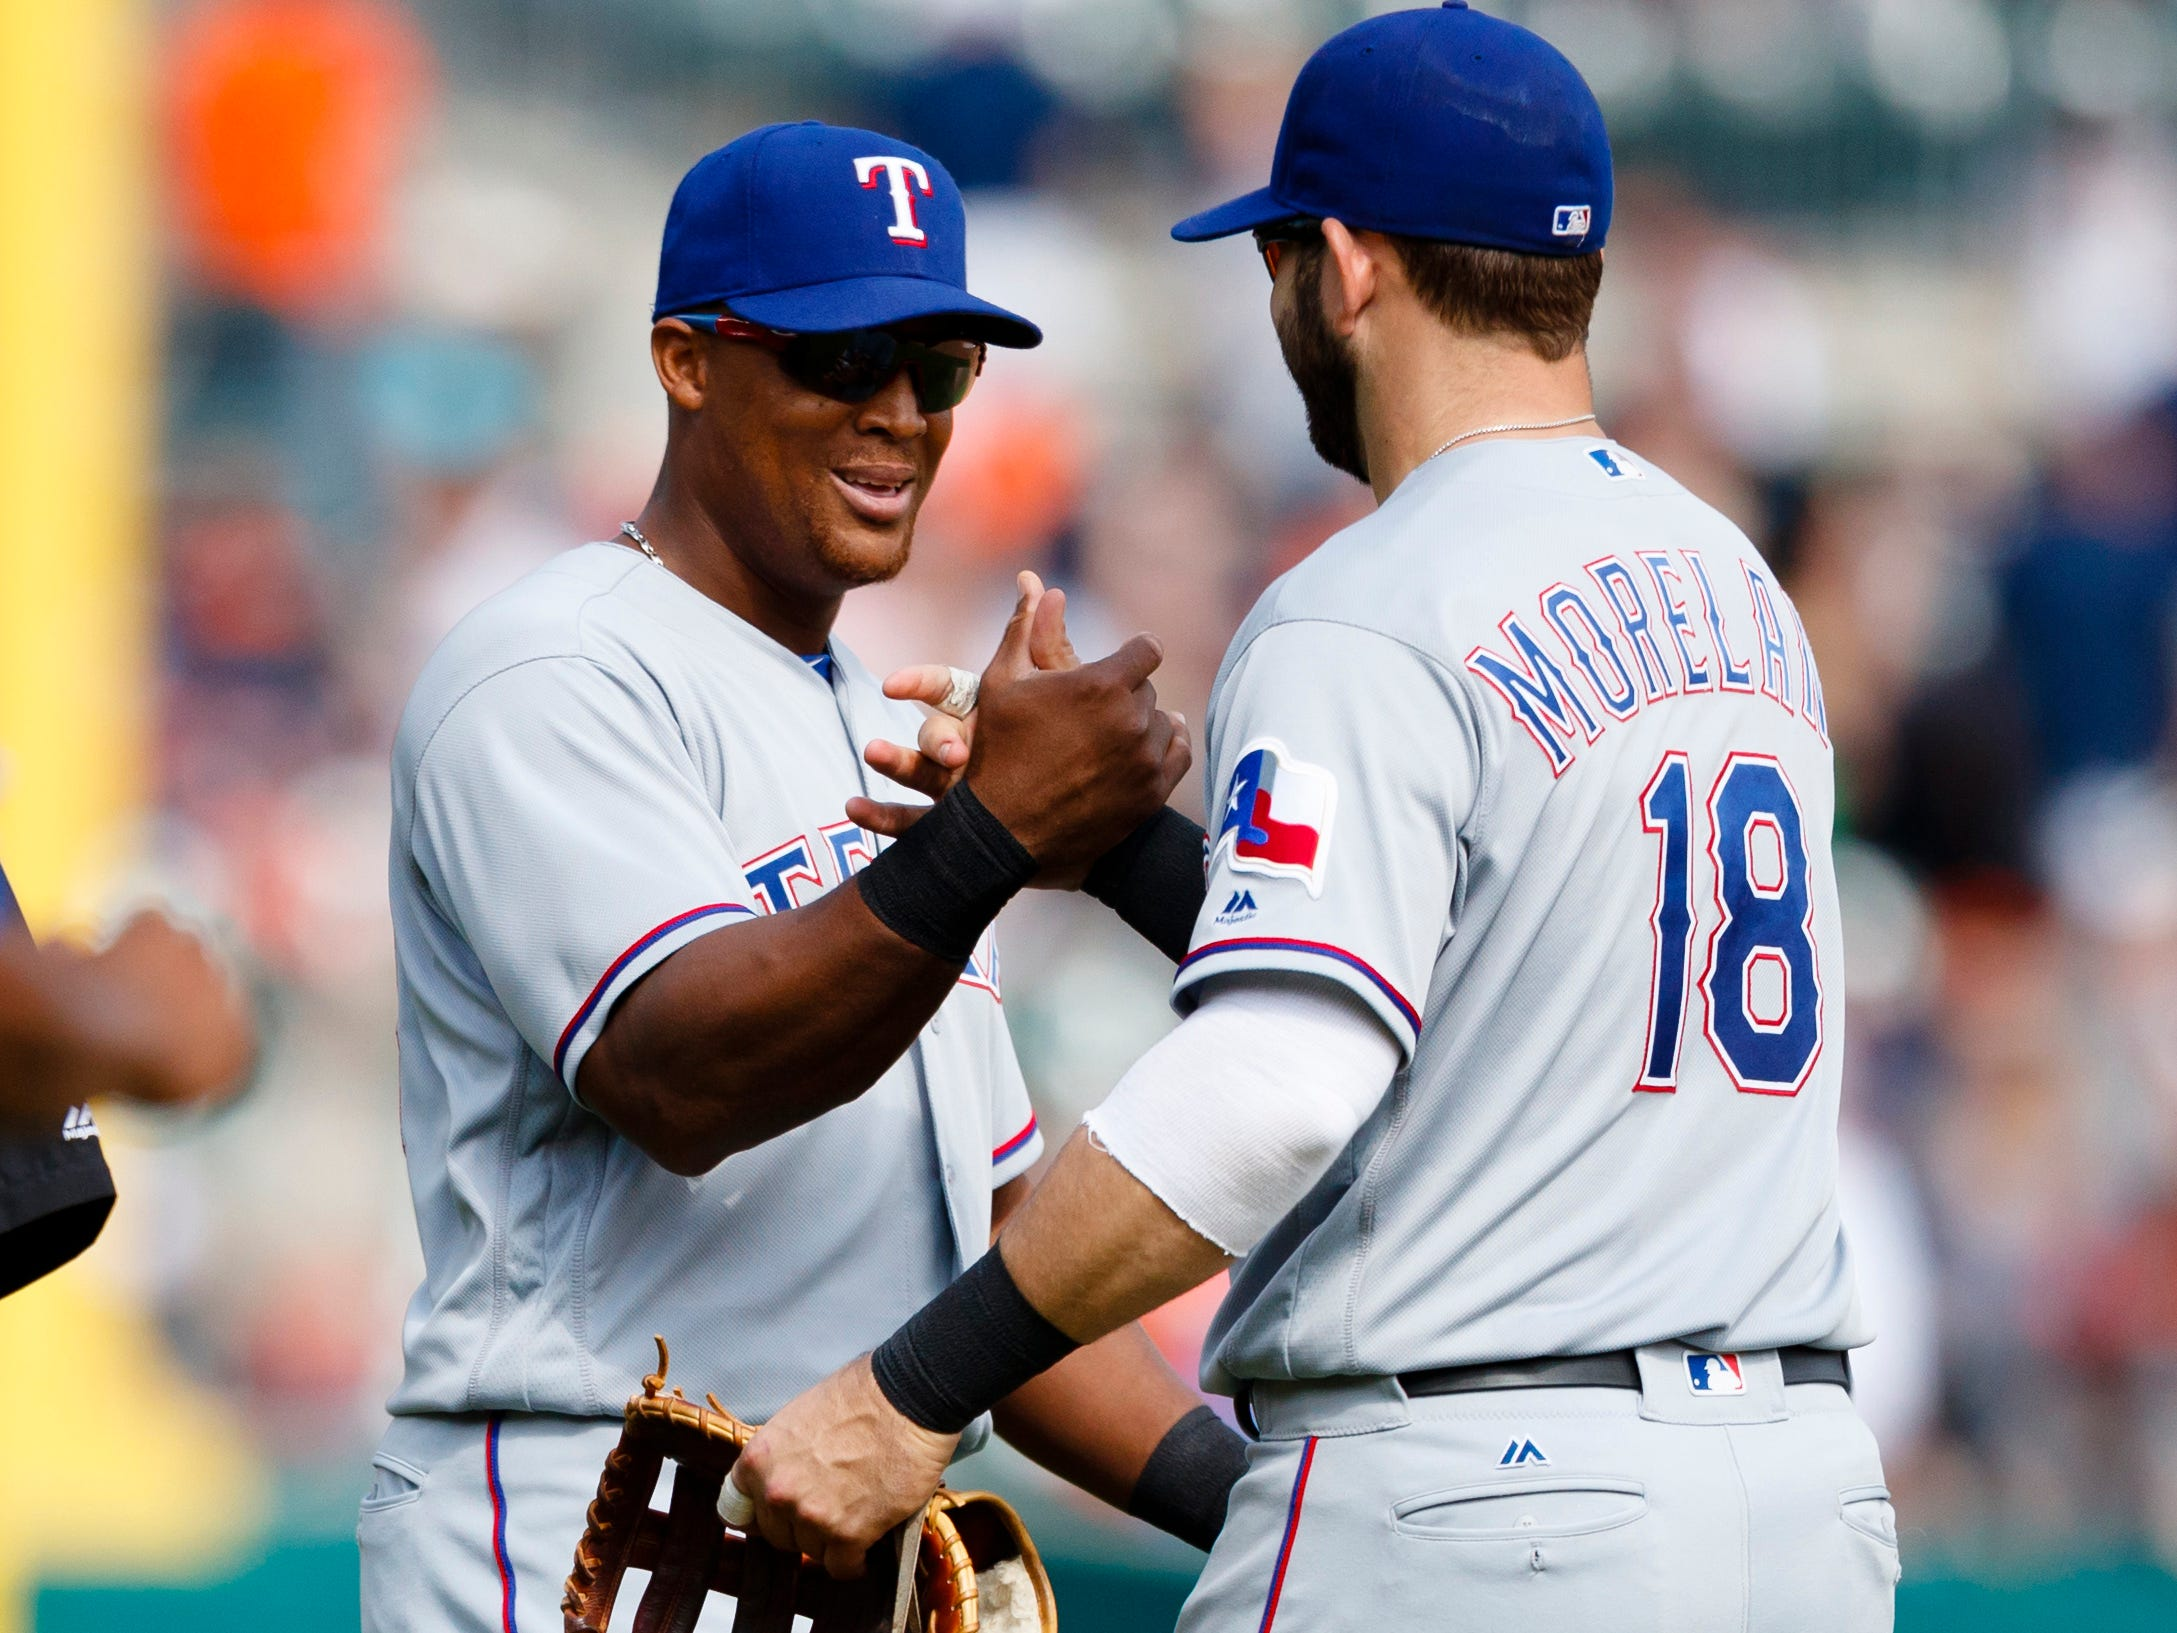 Beltre captured his fifth and final Gold Glove Award in 2016 at the age of 37. Only seven third basemen in MLB history have more Gold Gloves than Beltre.